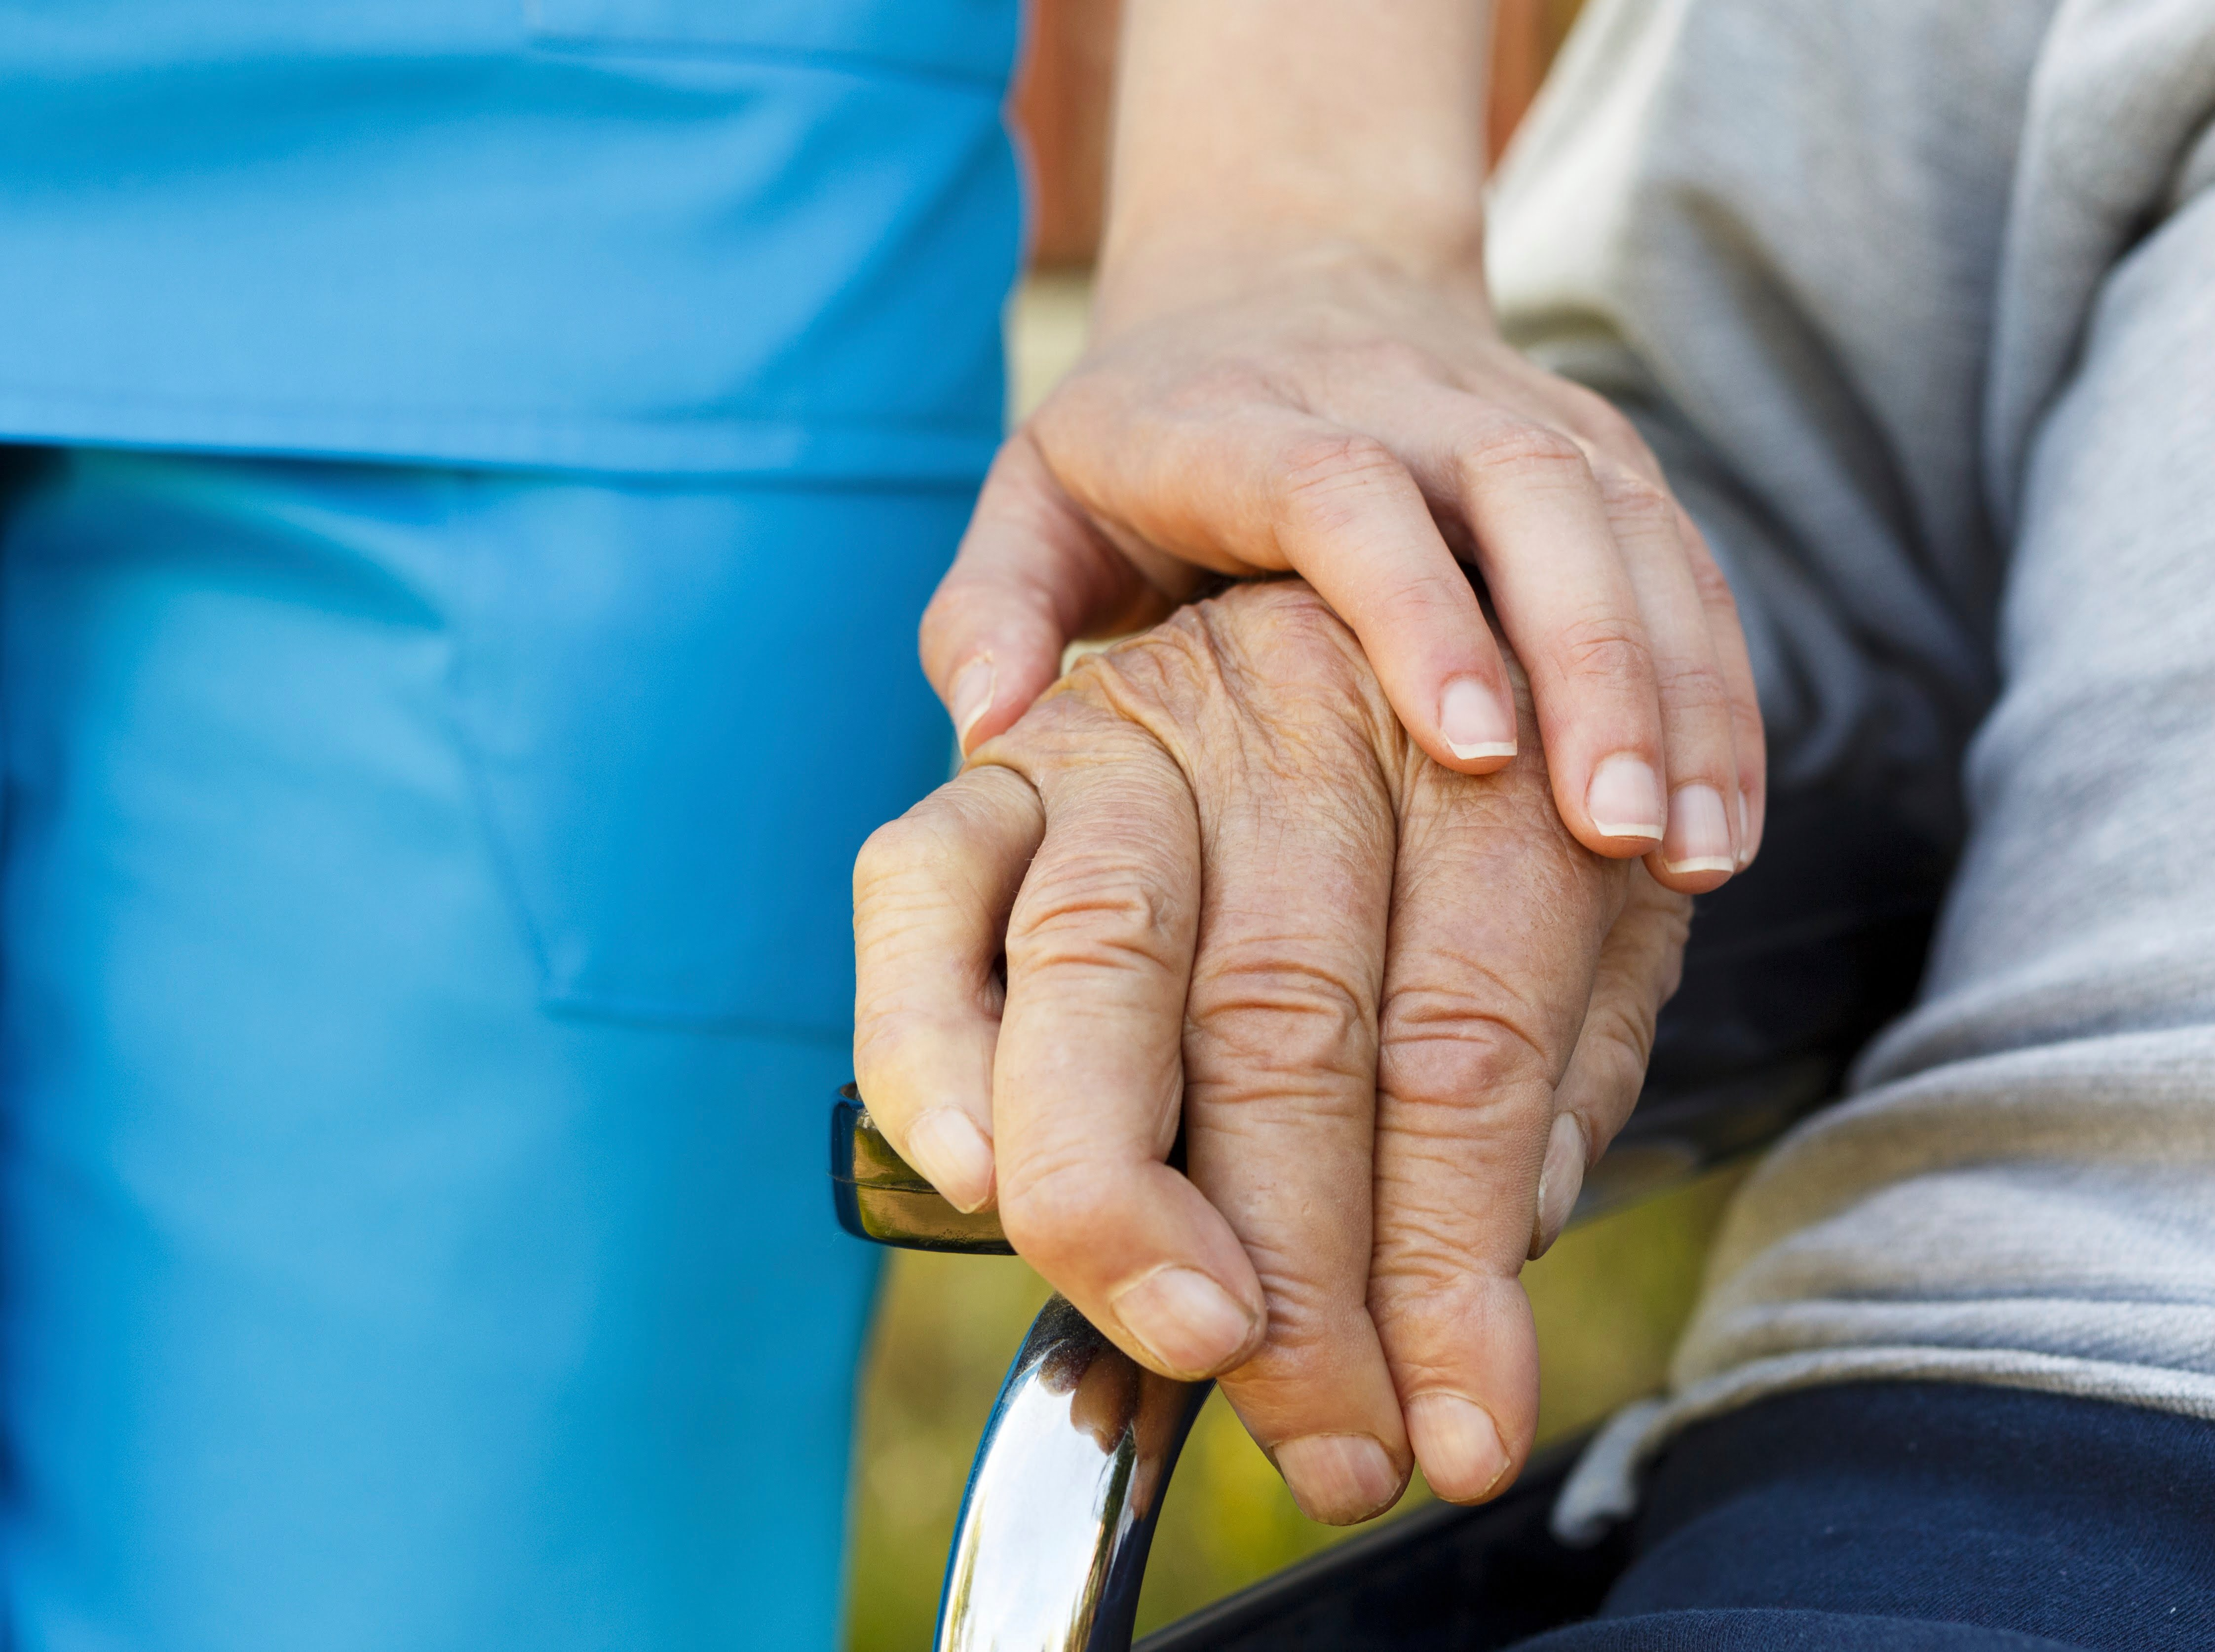 Conceptual image - support for the elderly in wheelchair.